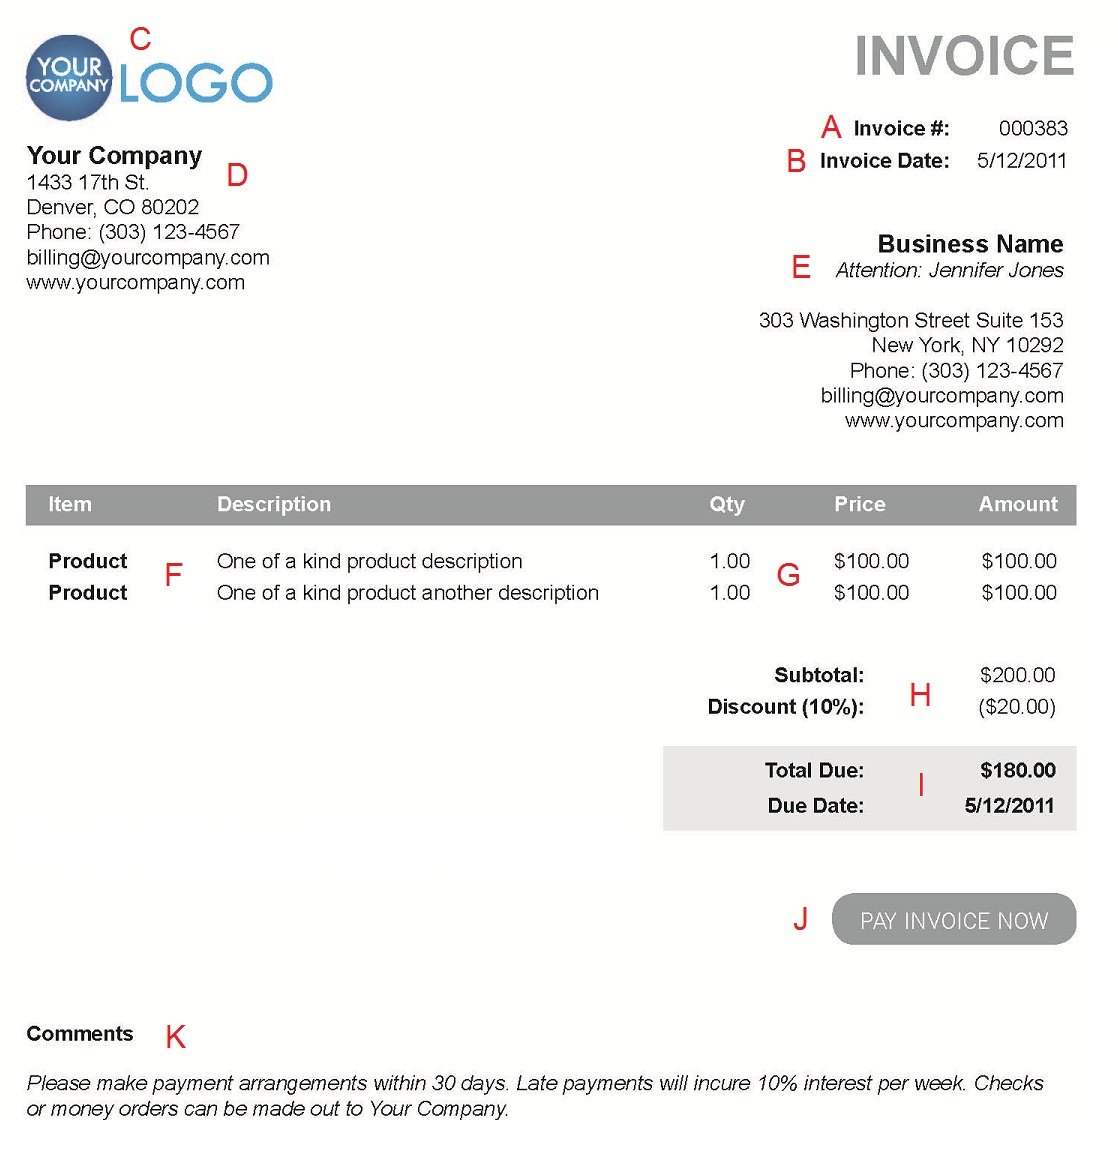 Soulfulpowerus  Marvelous The  Different Sections Of An Electronic Payment Invoice With Interesting A  With Attractive Invoice Quotation Also Packing Invoice In Addition How Make Invoice And Custom Invoice Software As Well As Receipt Of The Invoice Additionally Commercial Invoice Packing List From Paysimplecom With Soulfulpowerus  Interesting The  Different Sections Of An Electronic Payment Invoice With Attractive A  And Marvelous Invoice Quotation Also Packing Invoice In Addition How Make Invoice From Paysimplecom